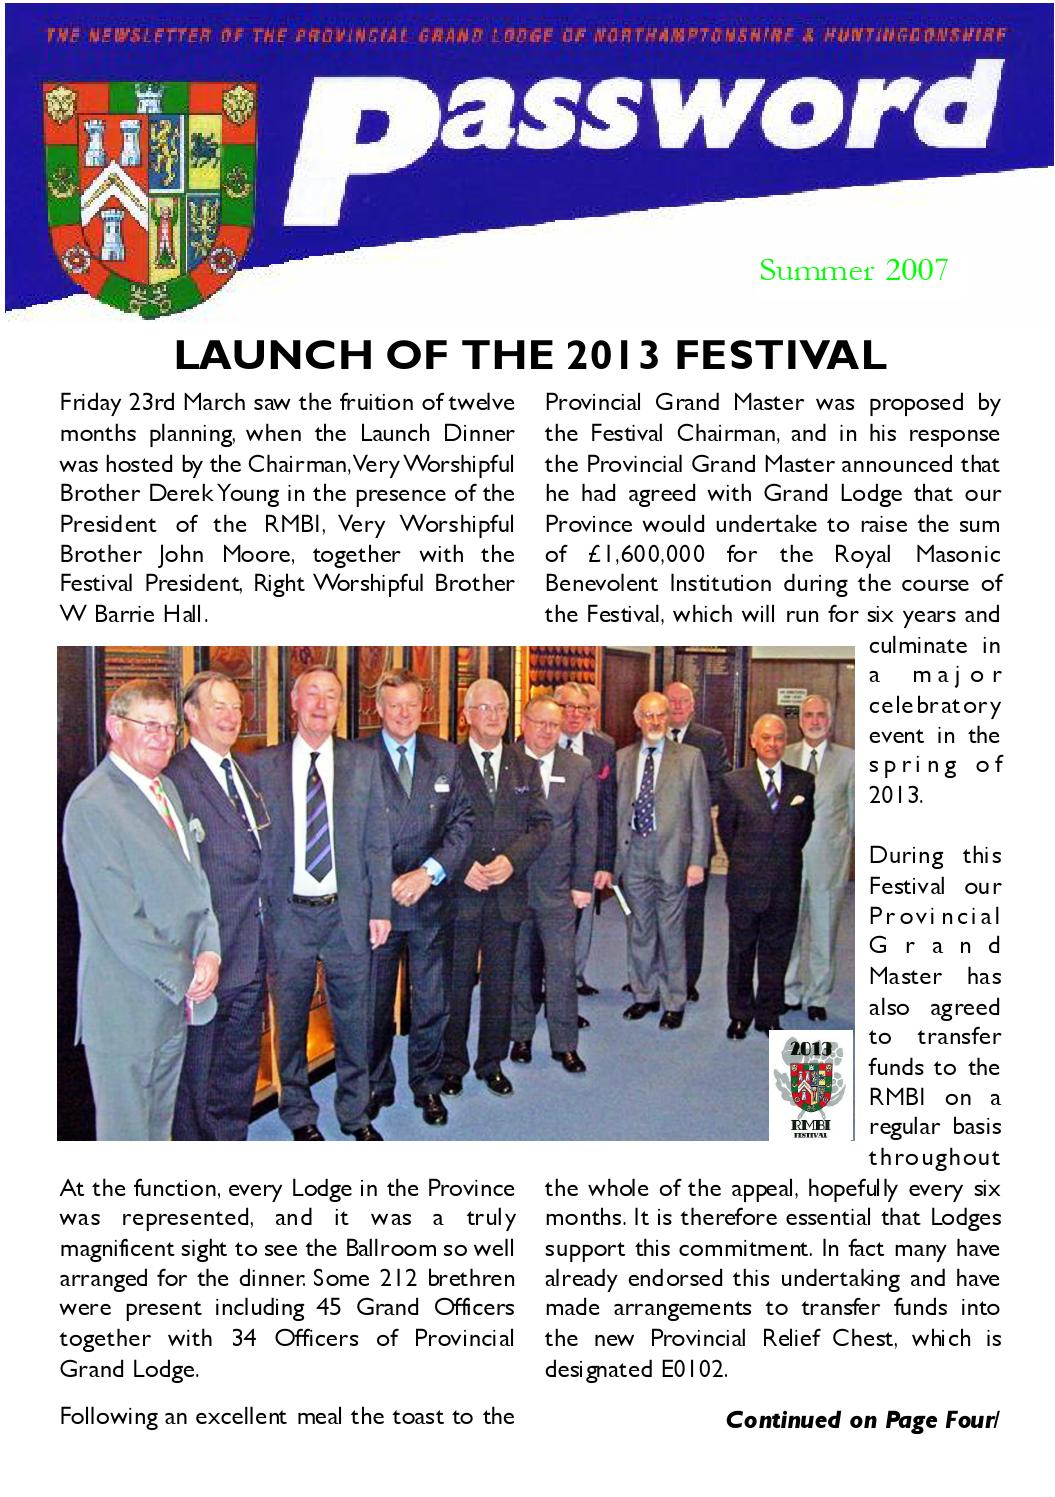 07 Password Summer 2007 by Northants and Hunts Masons - issuu